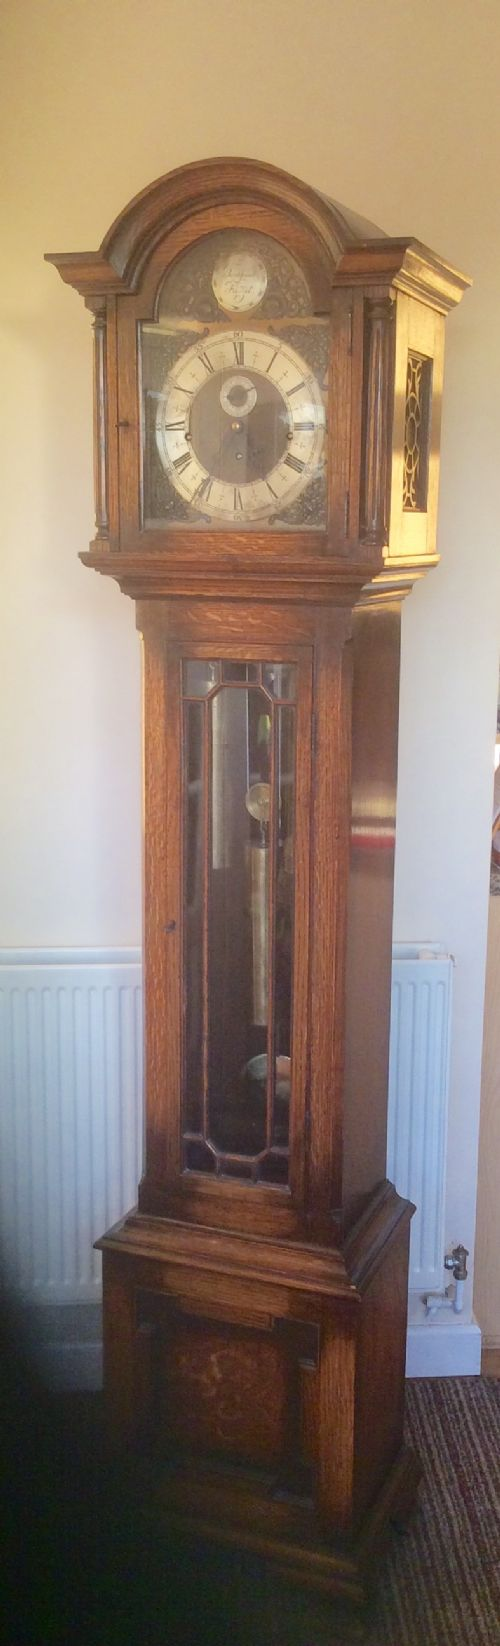 top quality glass fronted cable driven triple weight westminster chiming oak cased grandfather longcase clock with seconds chapter ring